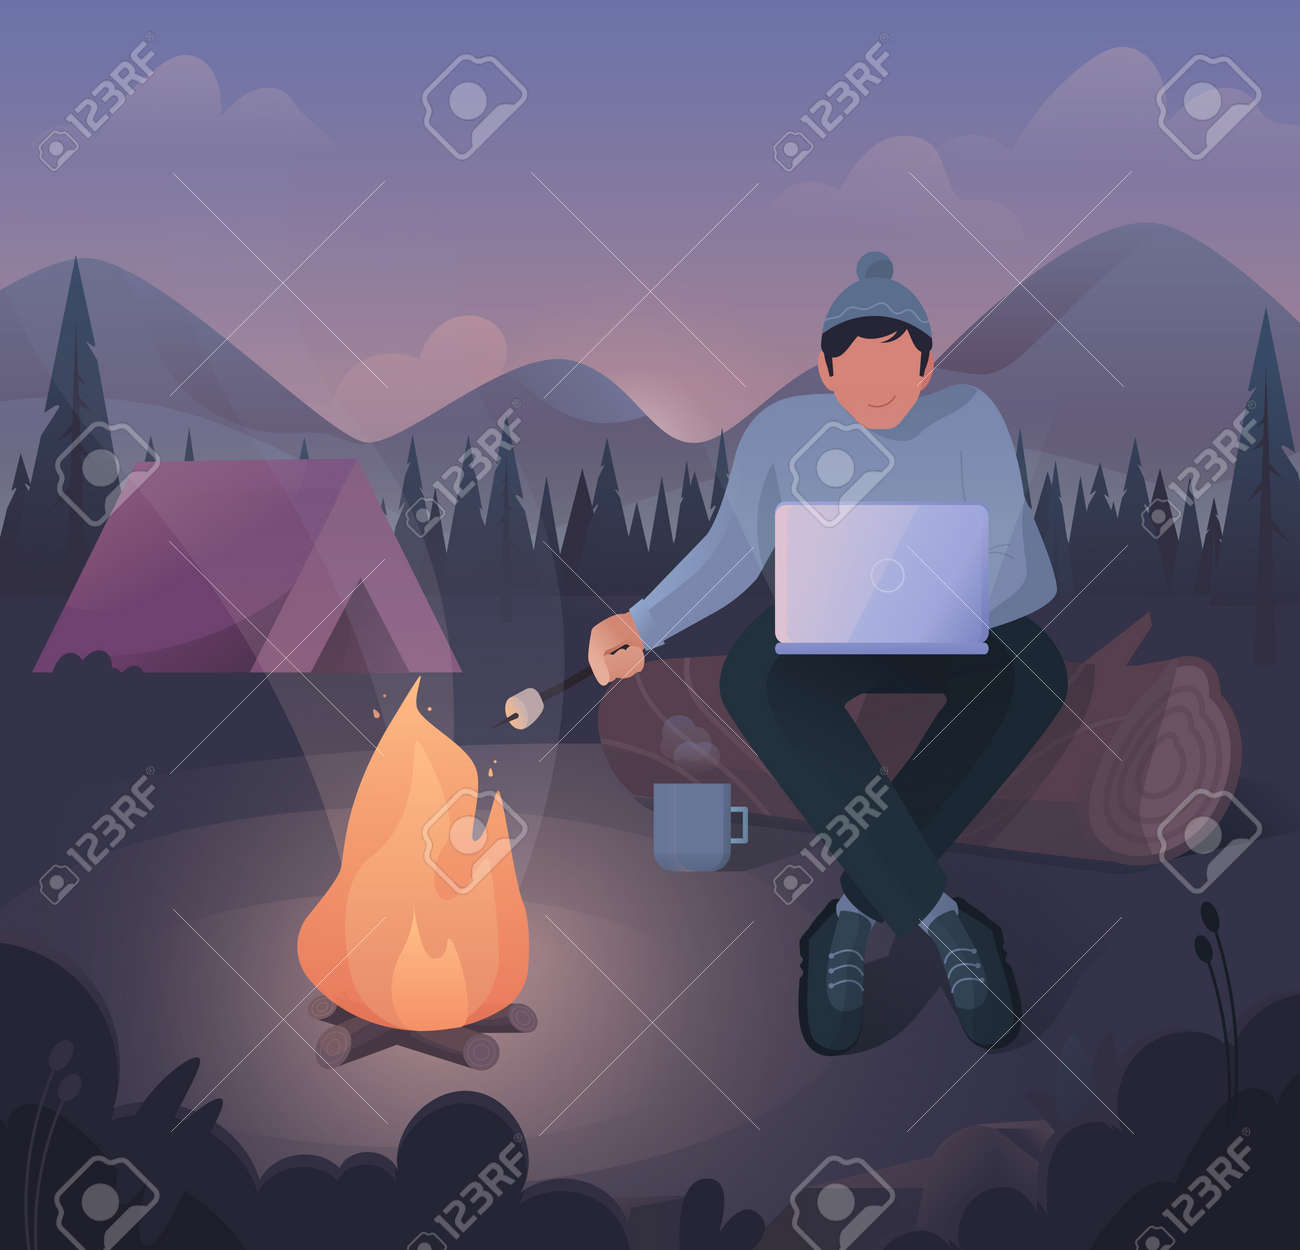 Freelancer work illustrations in flat vector, a young man who works and at the same time relaxes in nature by the fire - 165455054